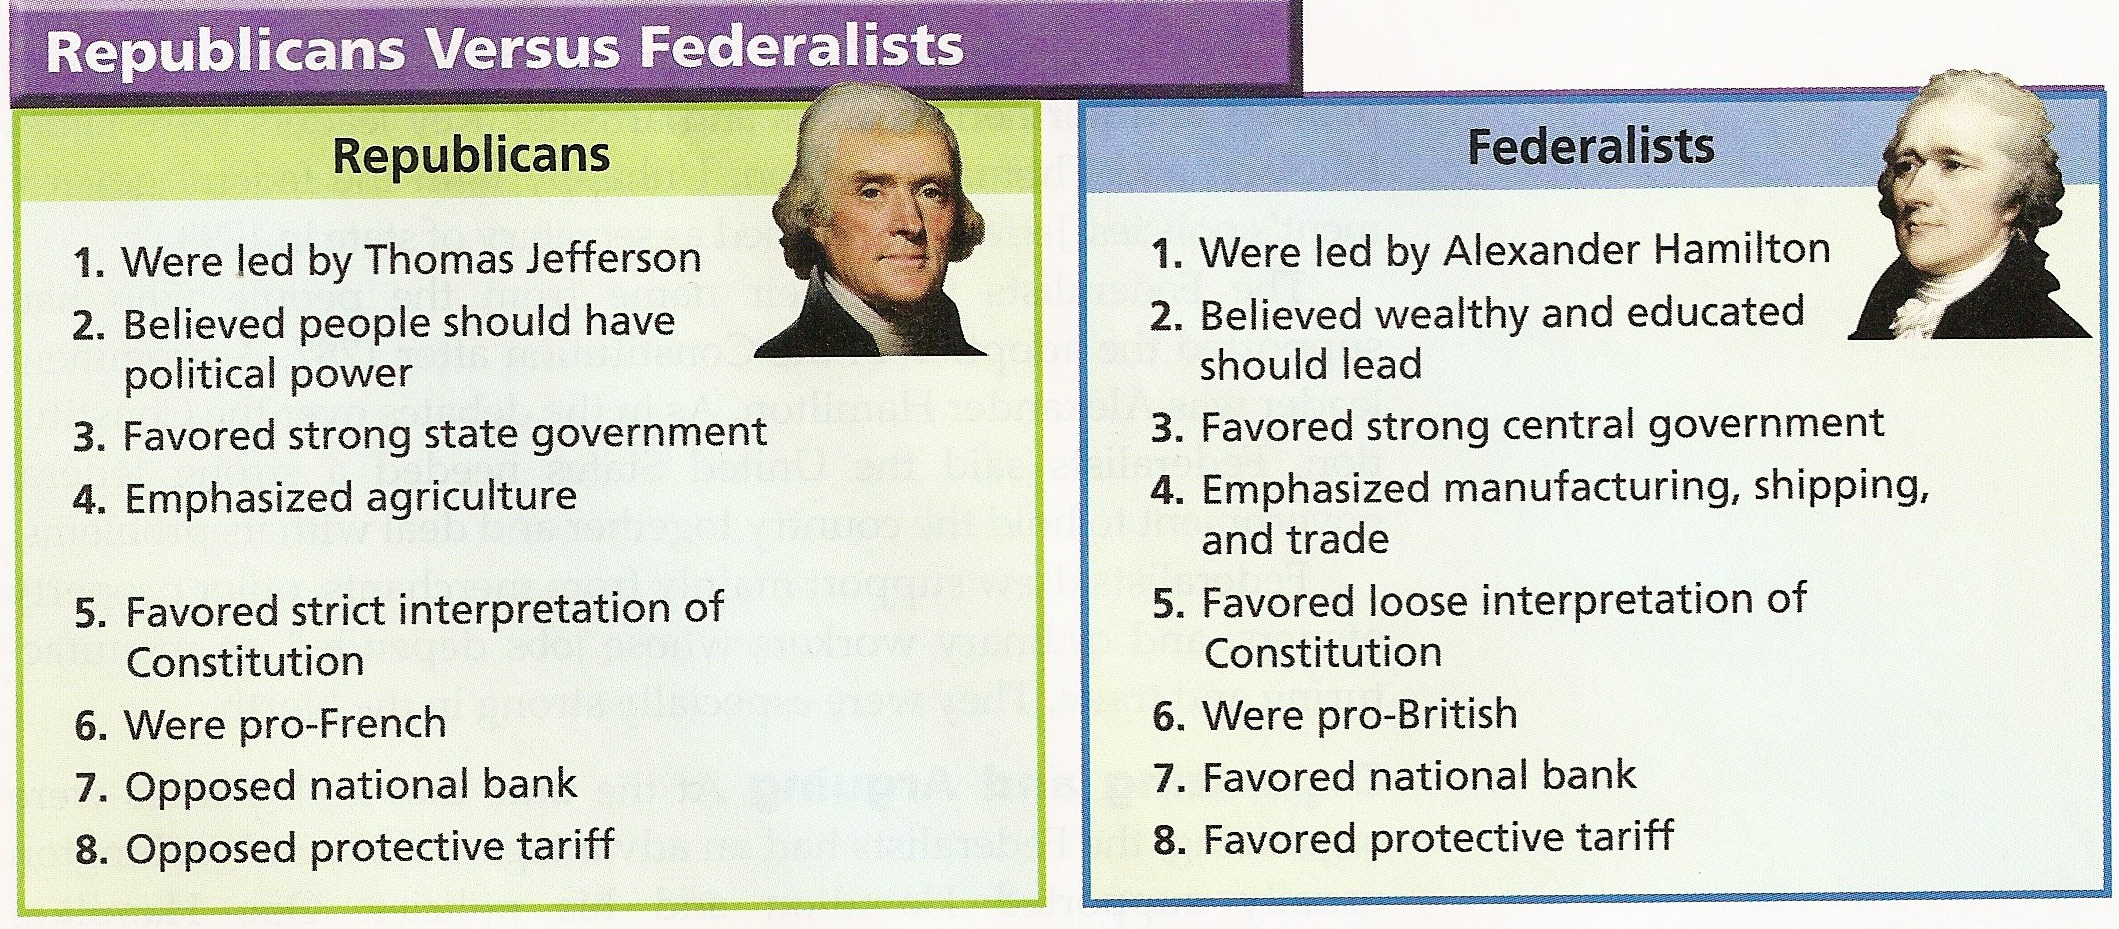 hamilton federalist vs jeffersonian republicans The jeffersonian republicans believed in strong state governments, a weak central government, and a strict construction of the constitution the federalists opted for a powerful central government with weaker state governments, and a loose interpretation of the constitution.